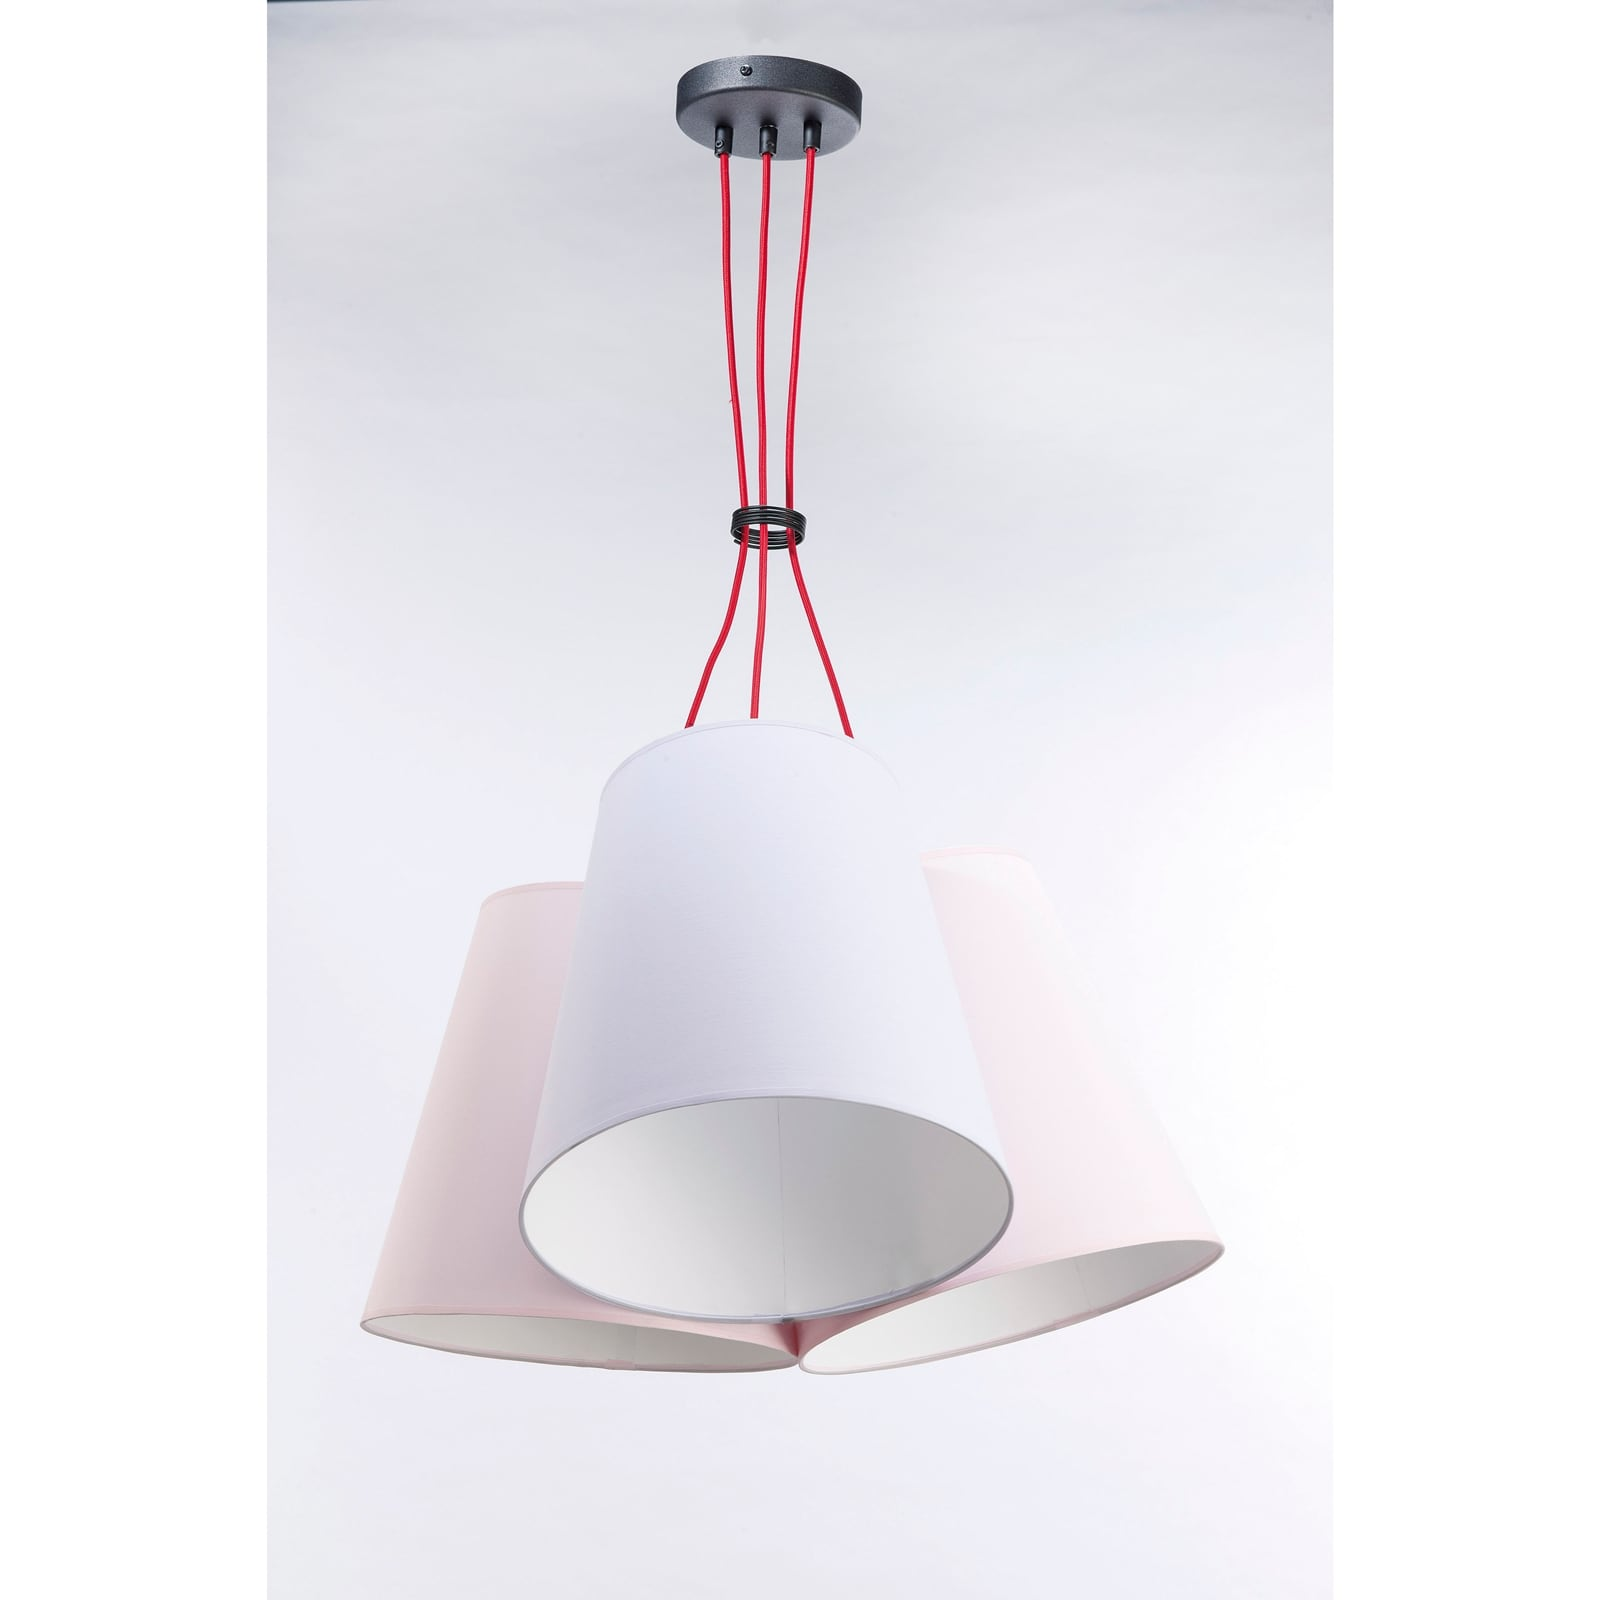 Hanging Lamp NECAR 3 No. 3222